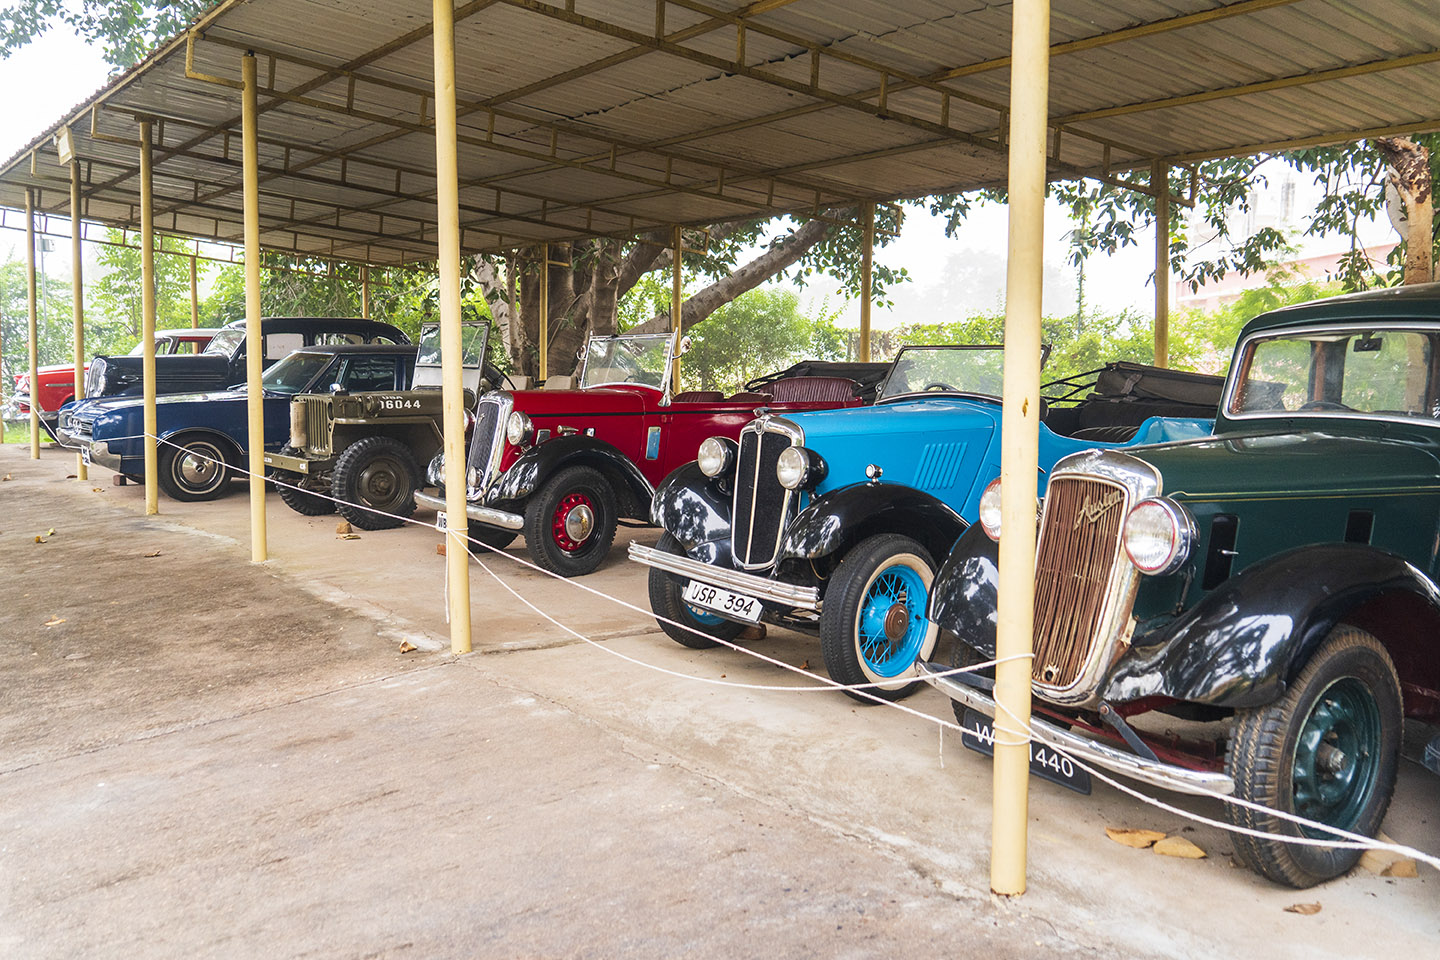 The hotel's fleet of vintage cars